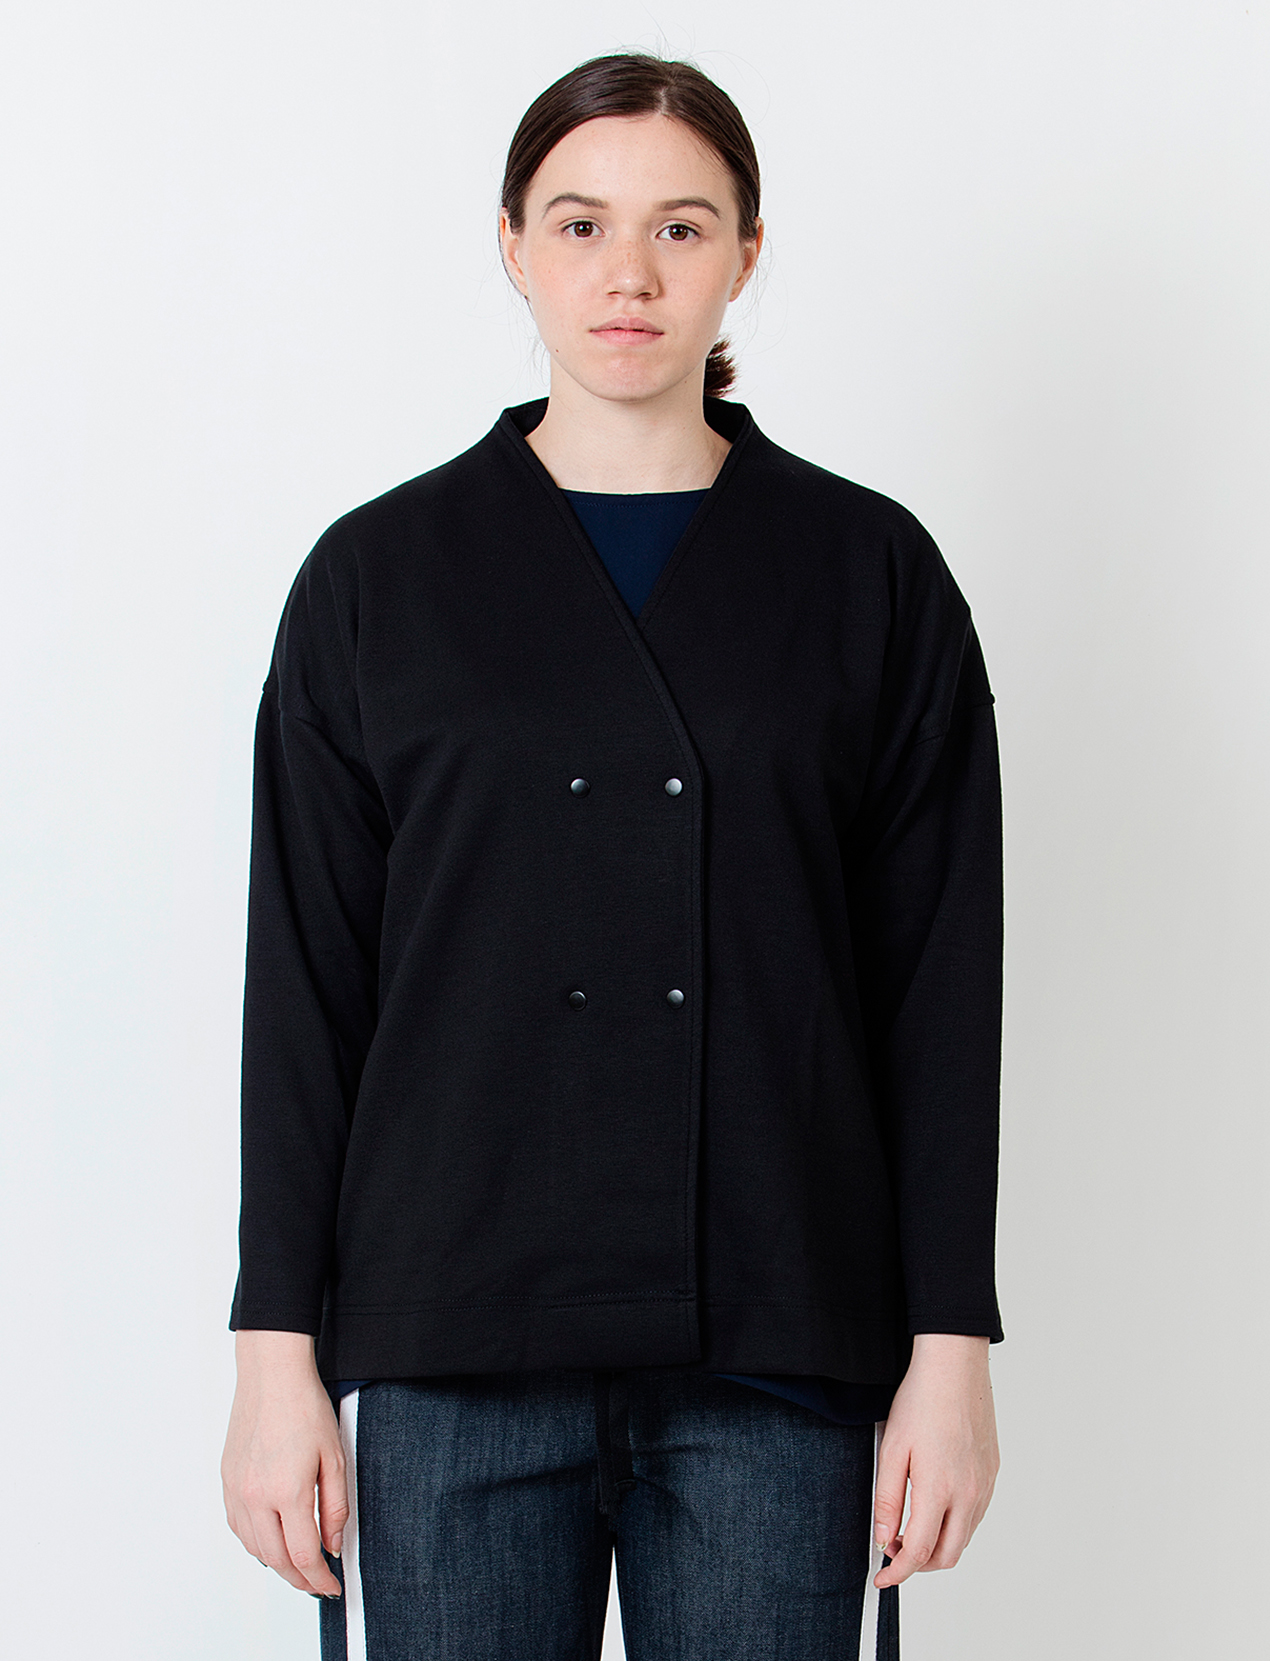 Wastu Attic Coat - Black